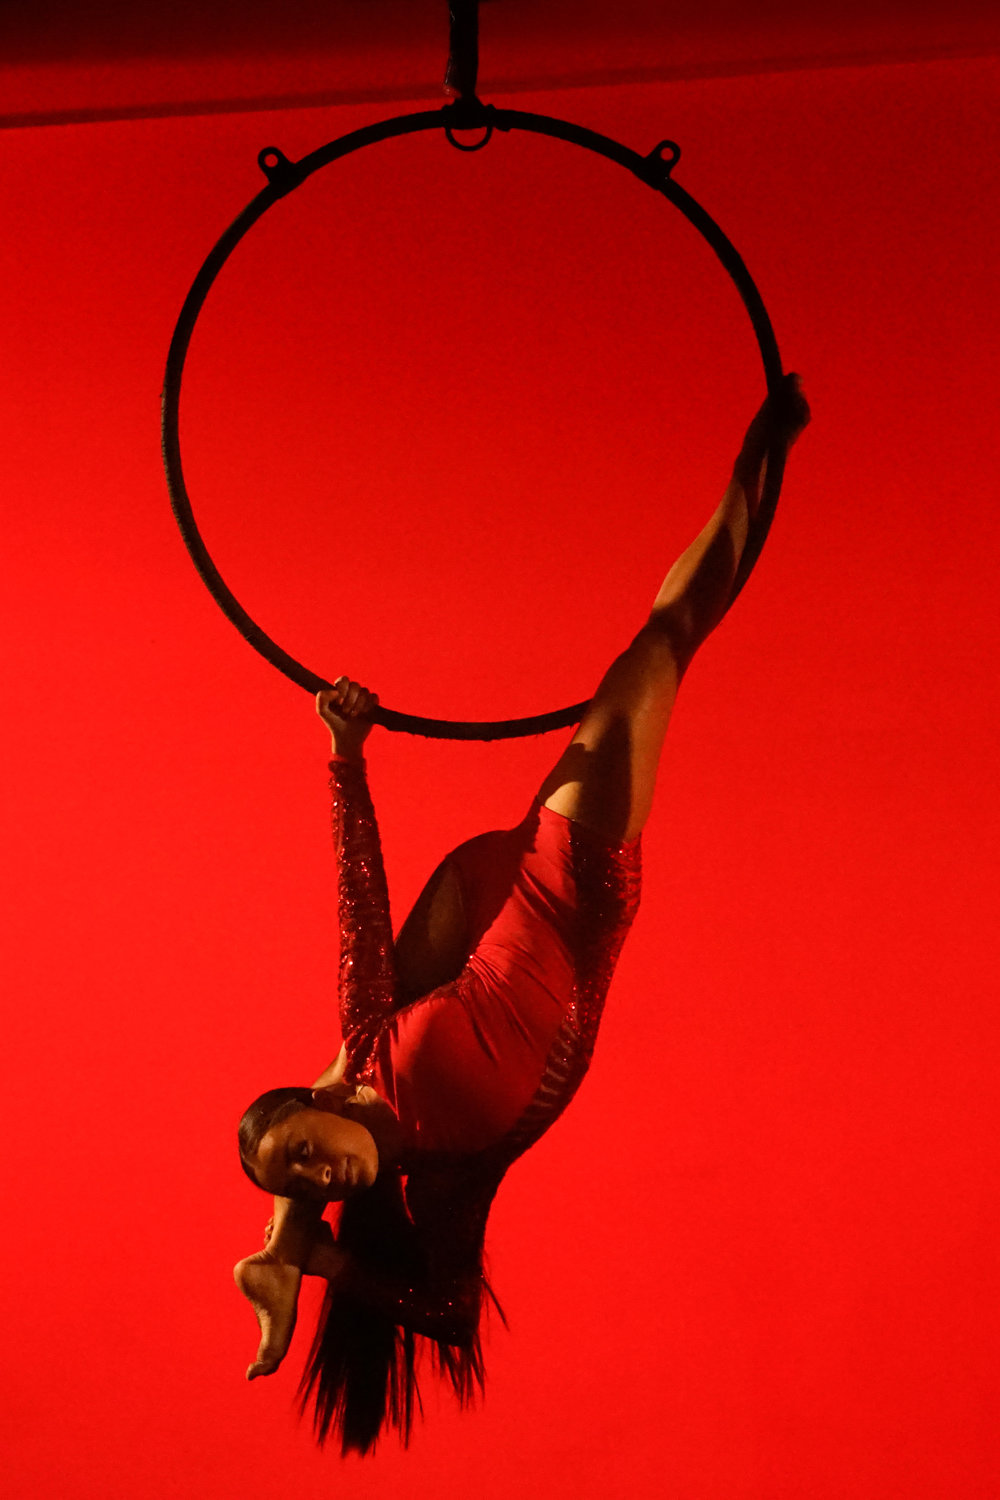 AERIAL LYRA - Aerial Lyra is a circular steel apparatus (resembling a hula hoop) suspended from the ceiling, on which circus artists may perform aerial acrobatics. It can be used static, spinning, or swinging. Students will learn the fundamentals of aerial acrobatics whilst building strong & flexible bodies. Aerial Lyra requires a lot of upper body strength and core strength.